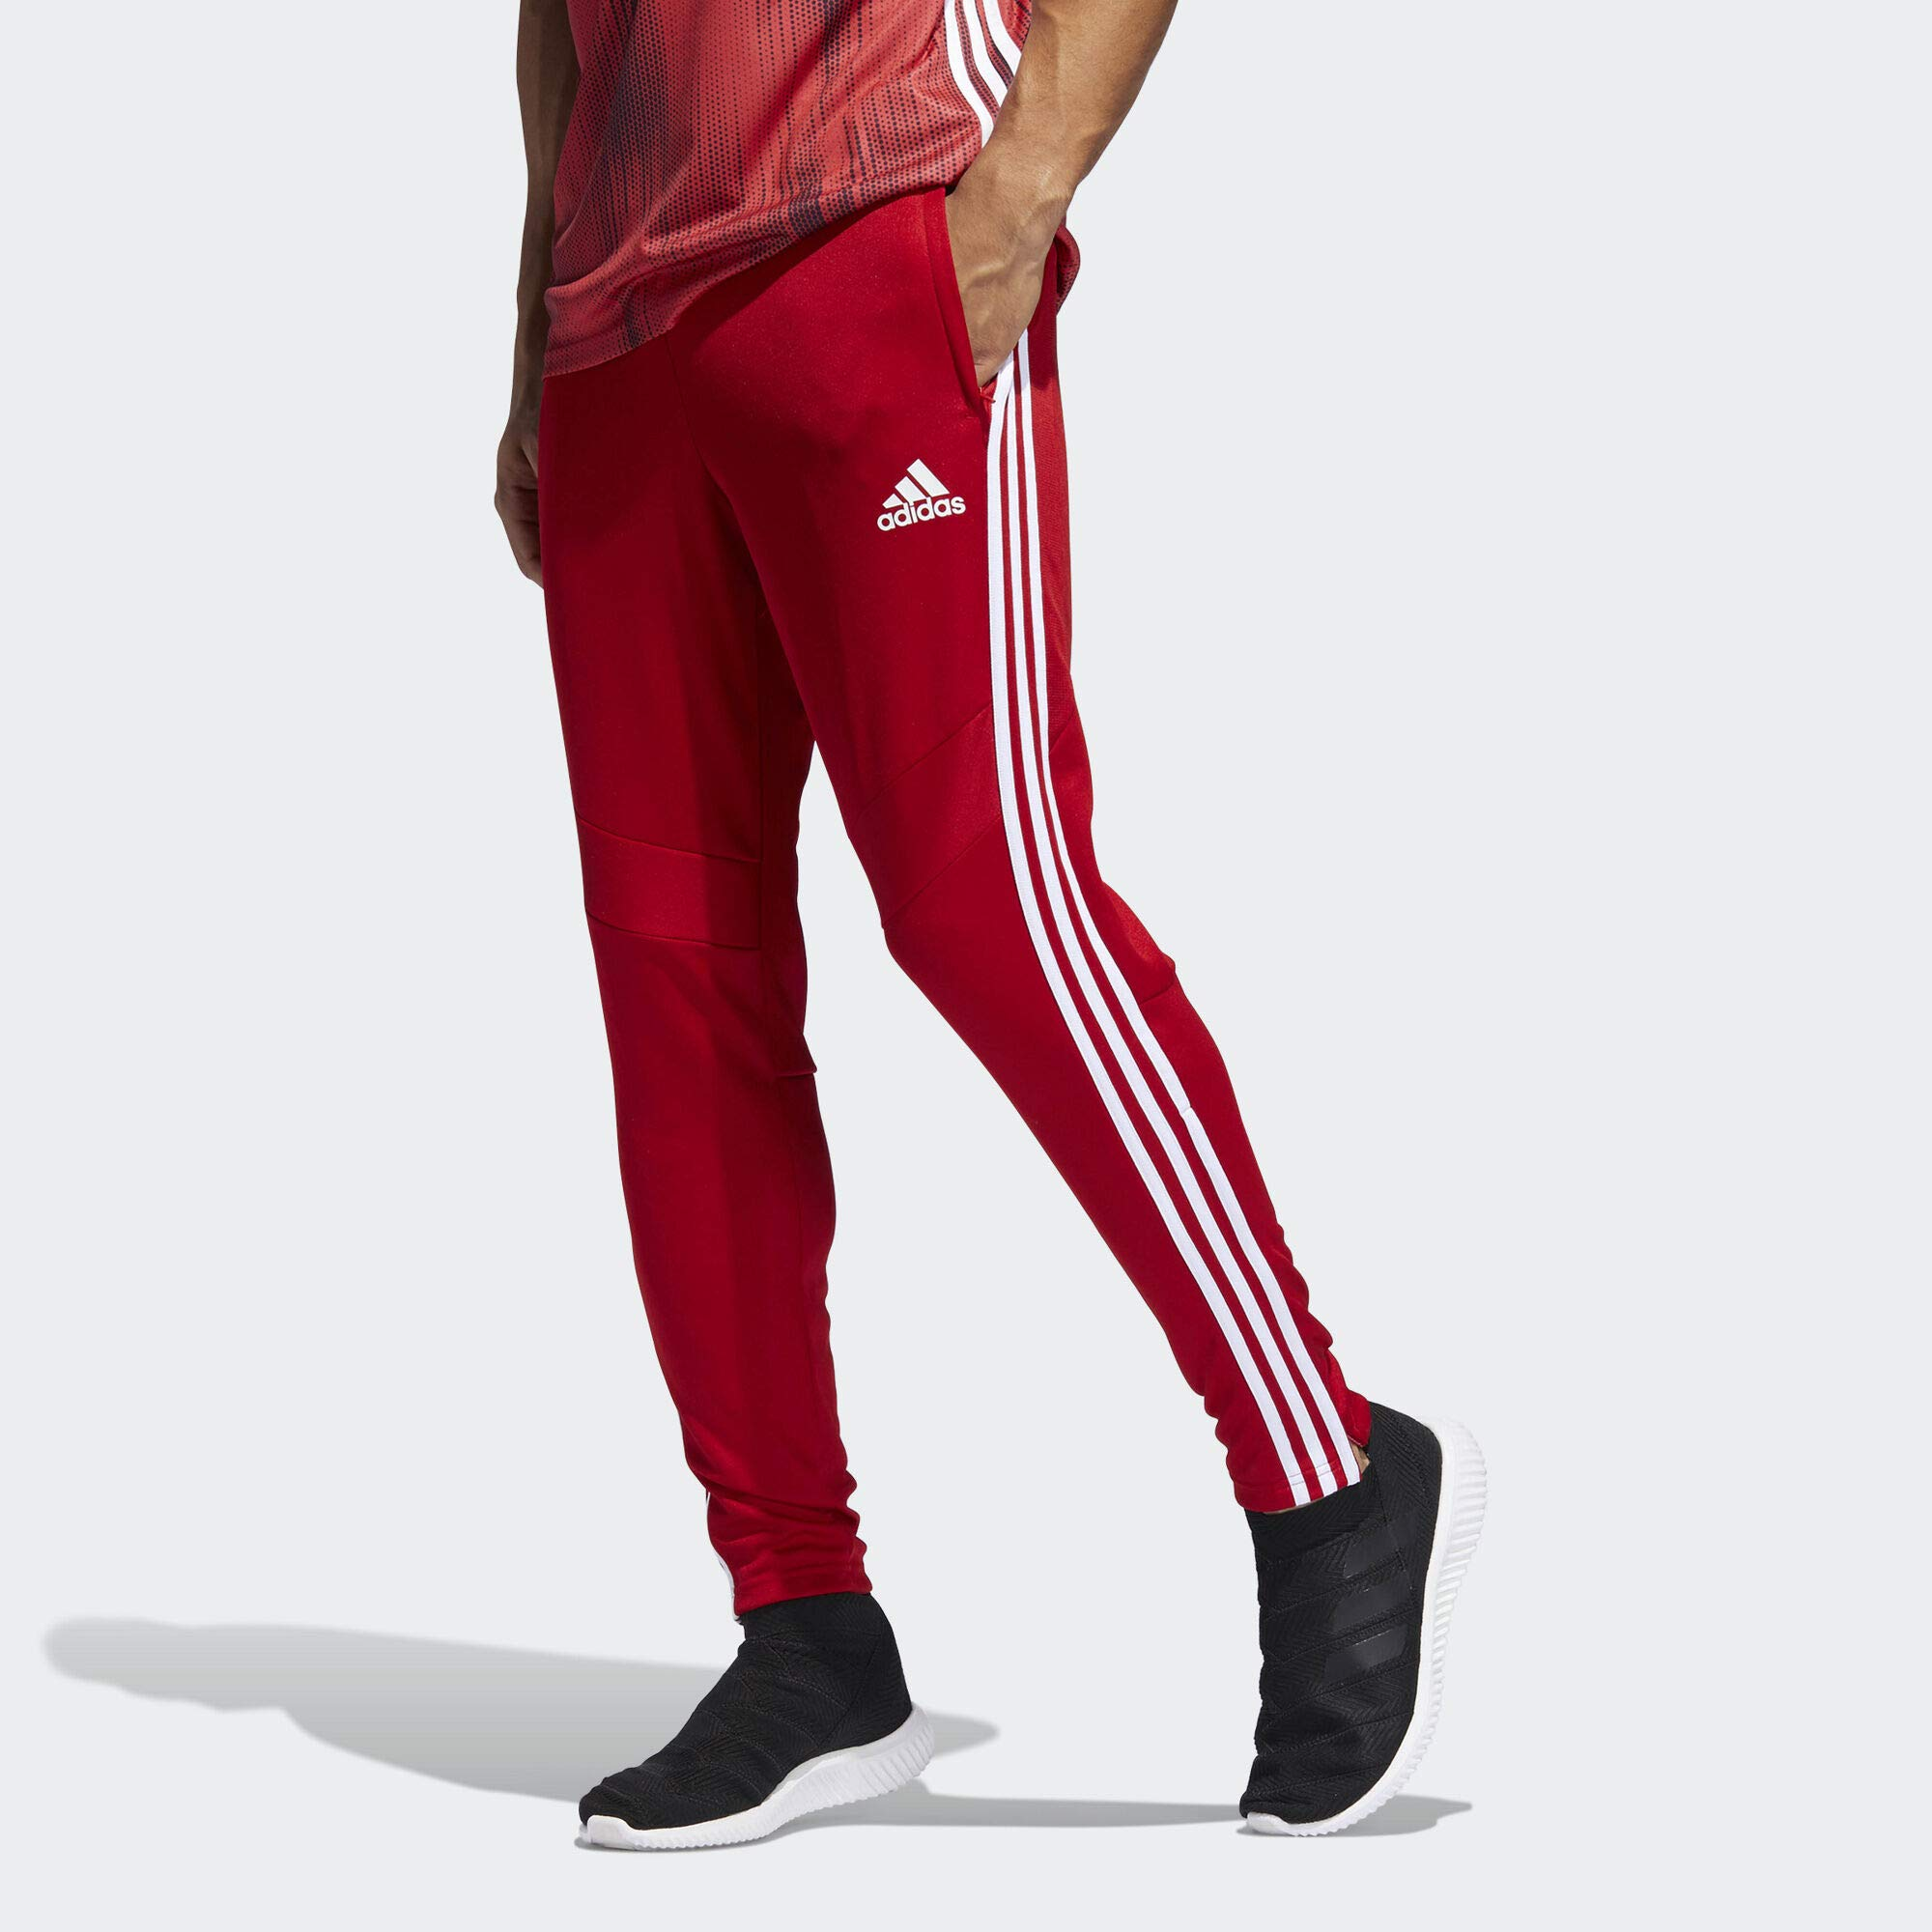 adidas Men's Tiro 19 Training Soccer Pants, Tiro '19 Pants, Power Red/White, Large by adidas